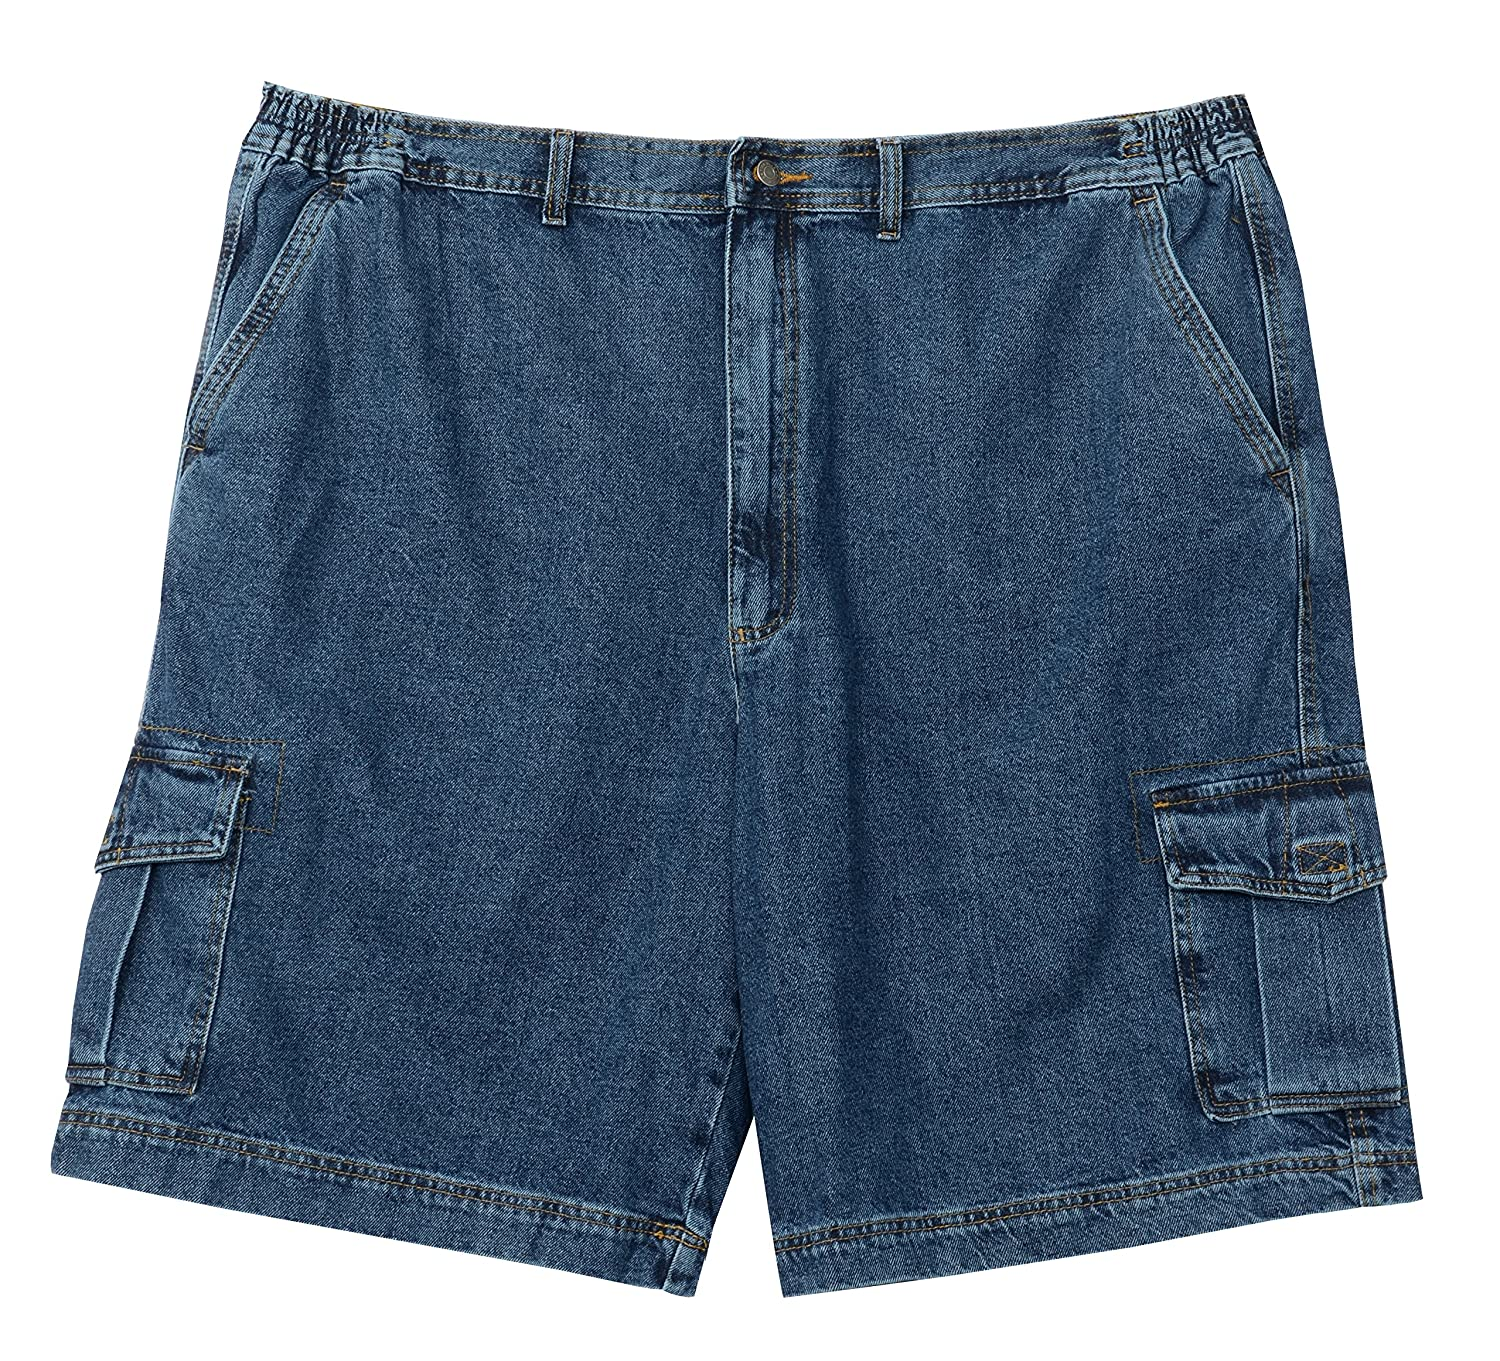 Full Blue Big Mens Denim Cargo Short